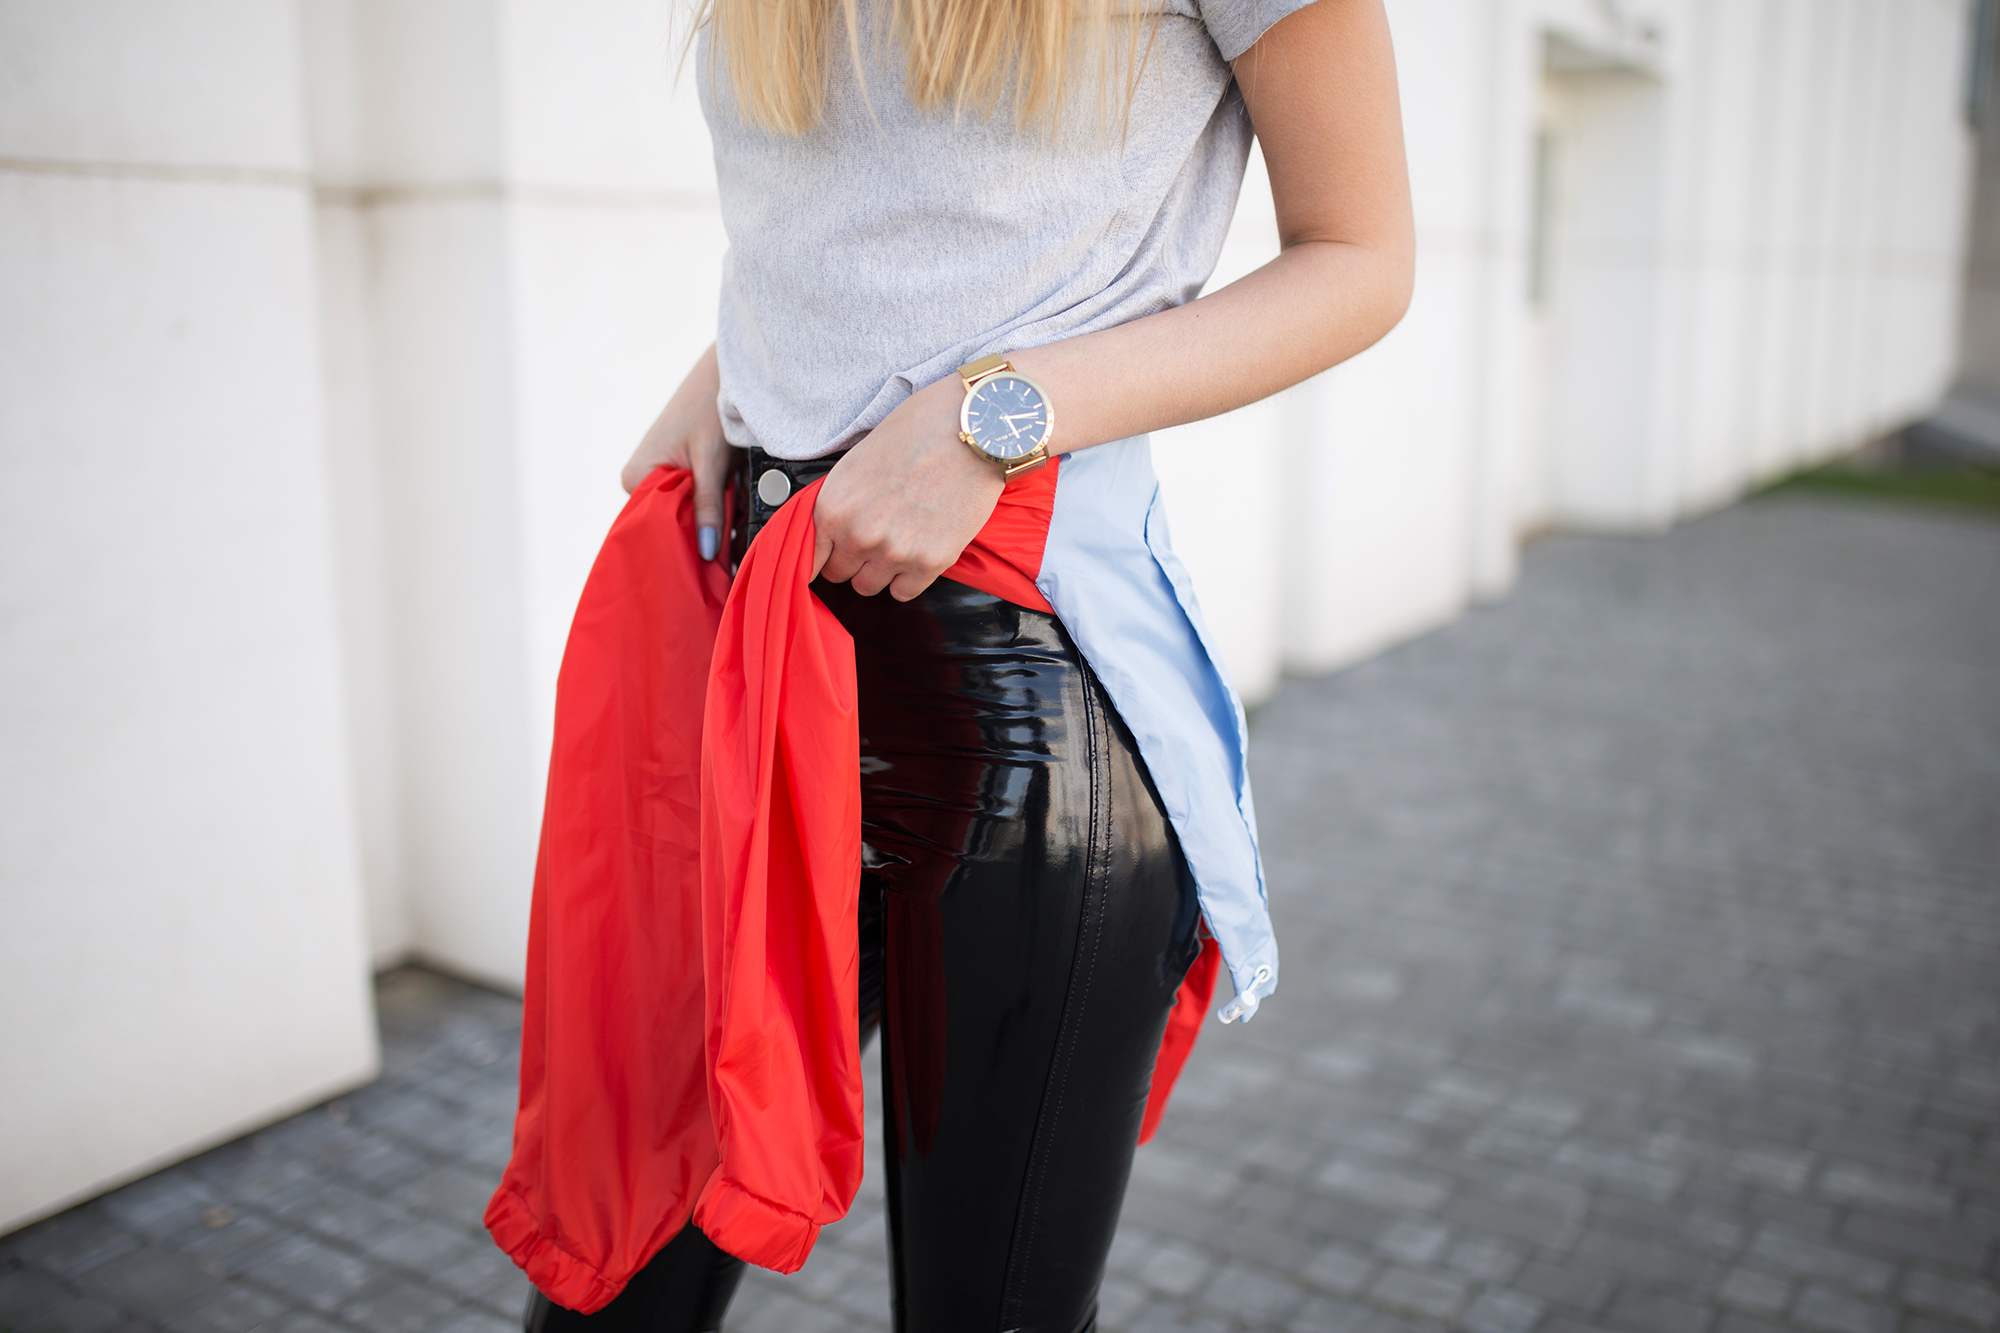 sporty-chic-outfit-ideas-street-style-blogger